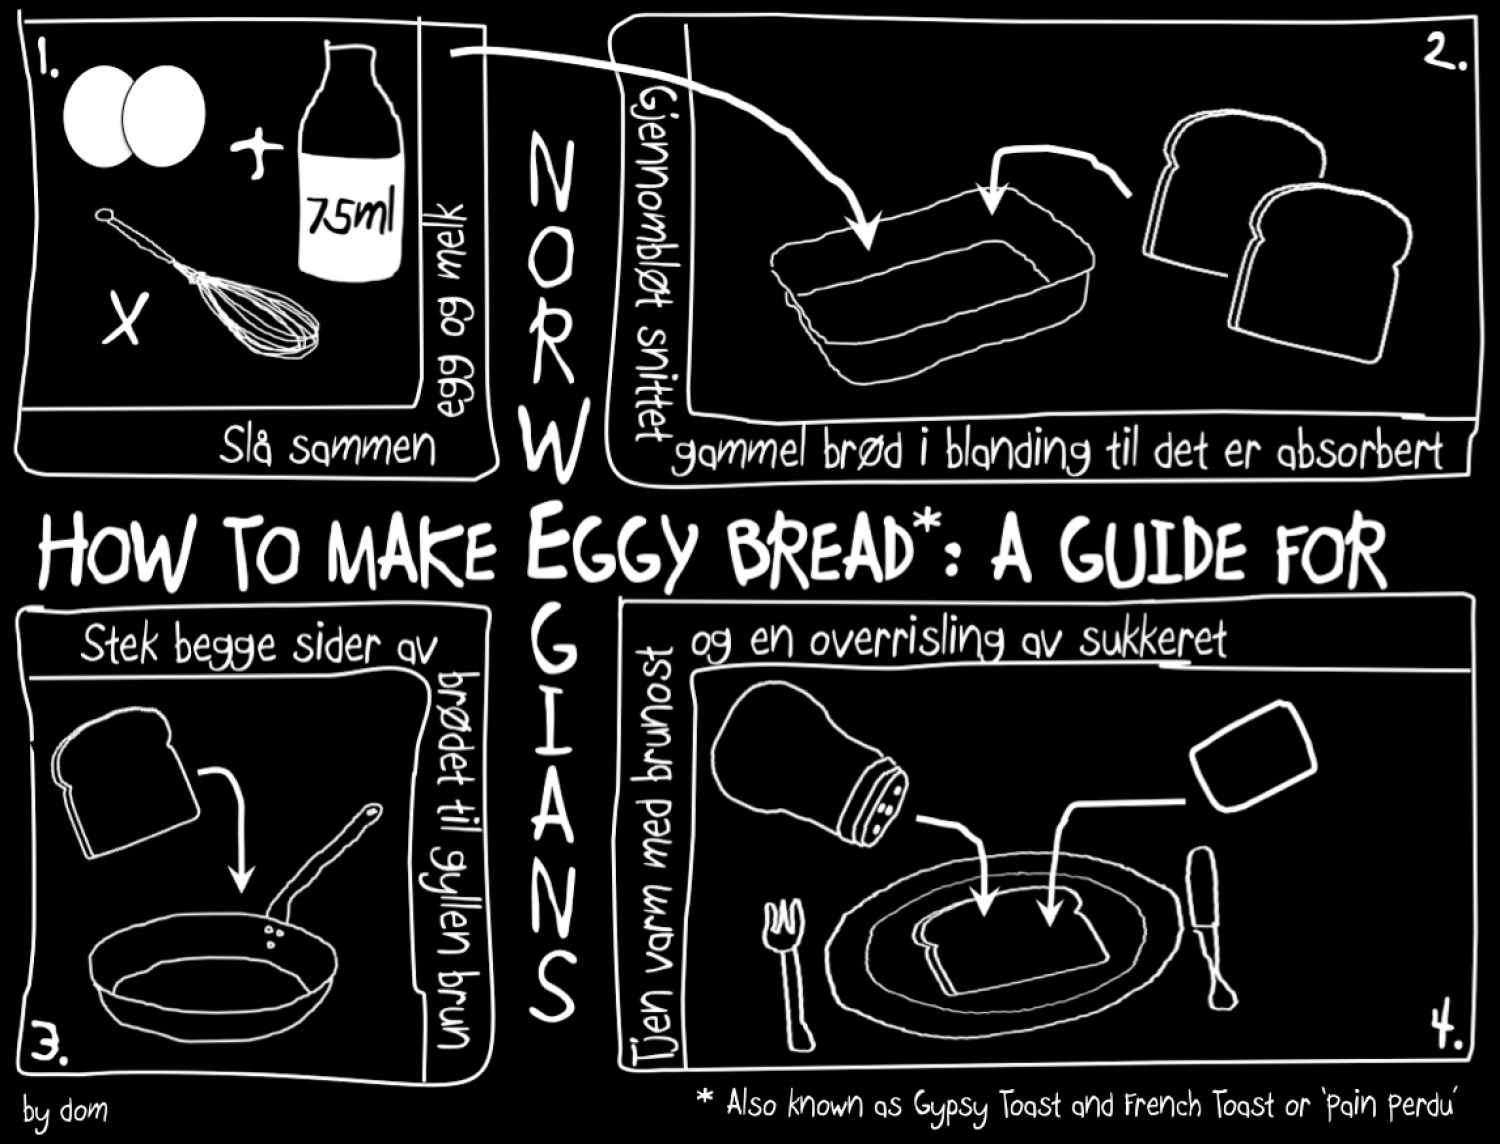 How to Make Eggy Bread: A Guide for Norwegians Infographic